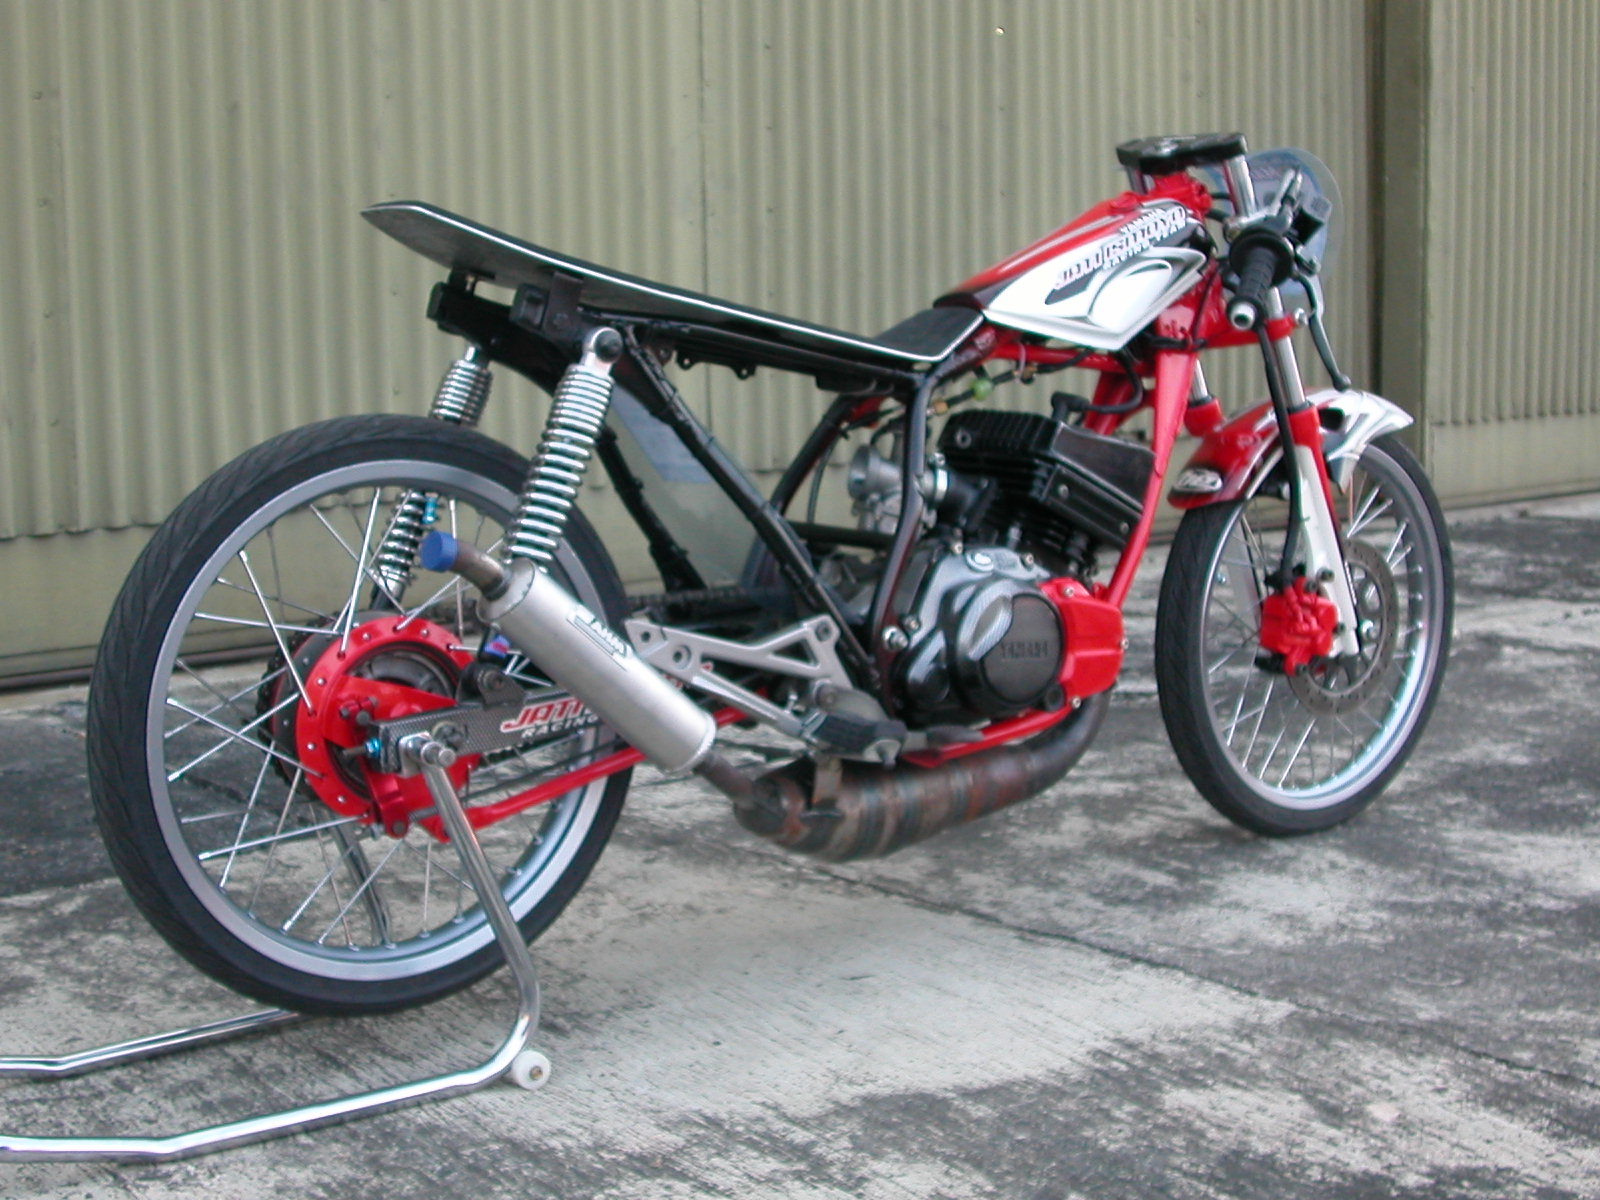 Image Modifikasi Motor Drag